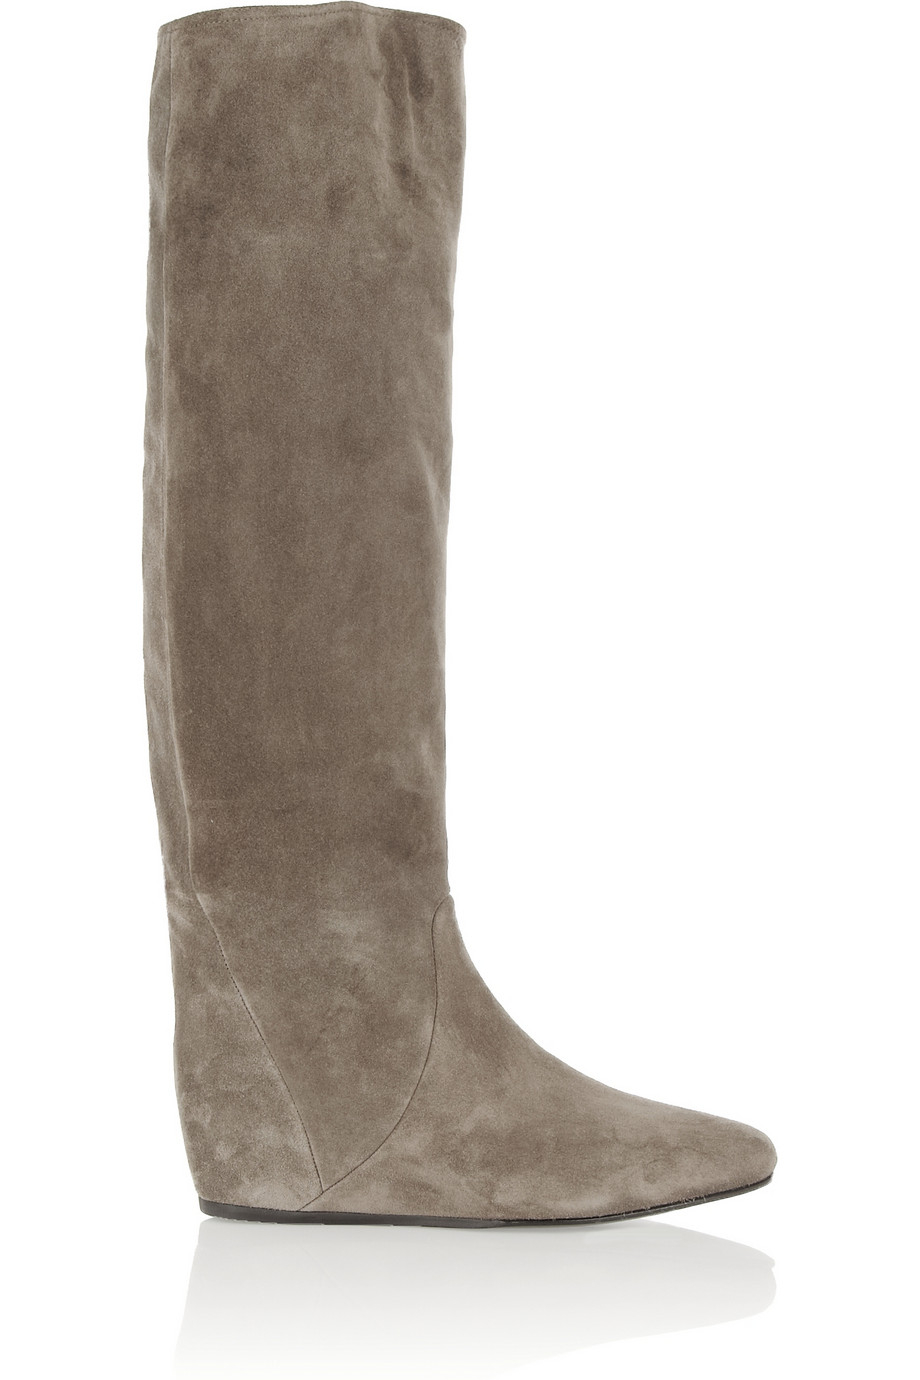 48b5583fbf30 Lanvin Suede Wedge Knee Boots in Gray - Lyst